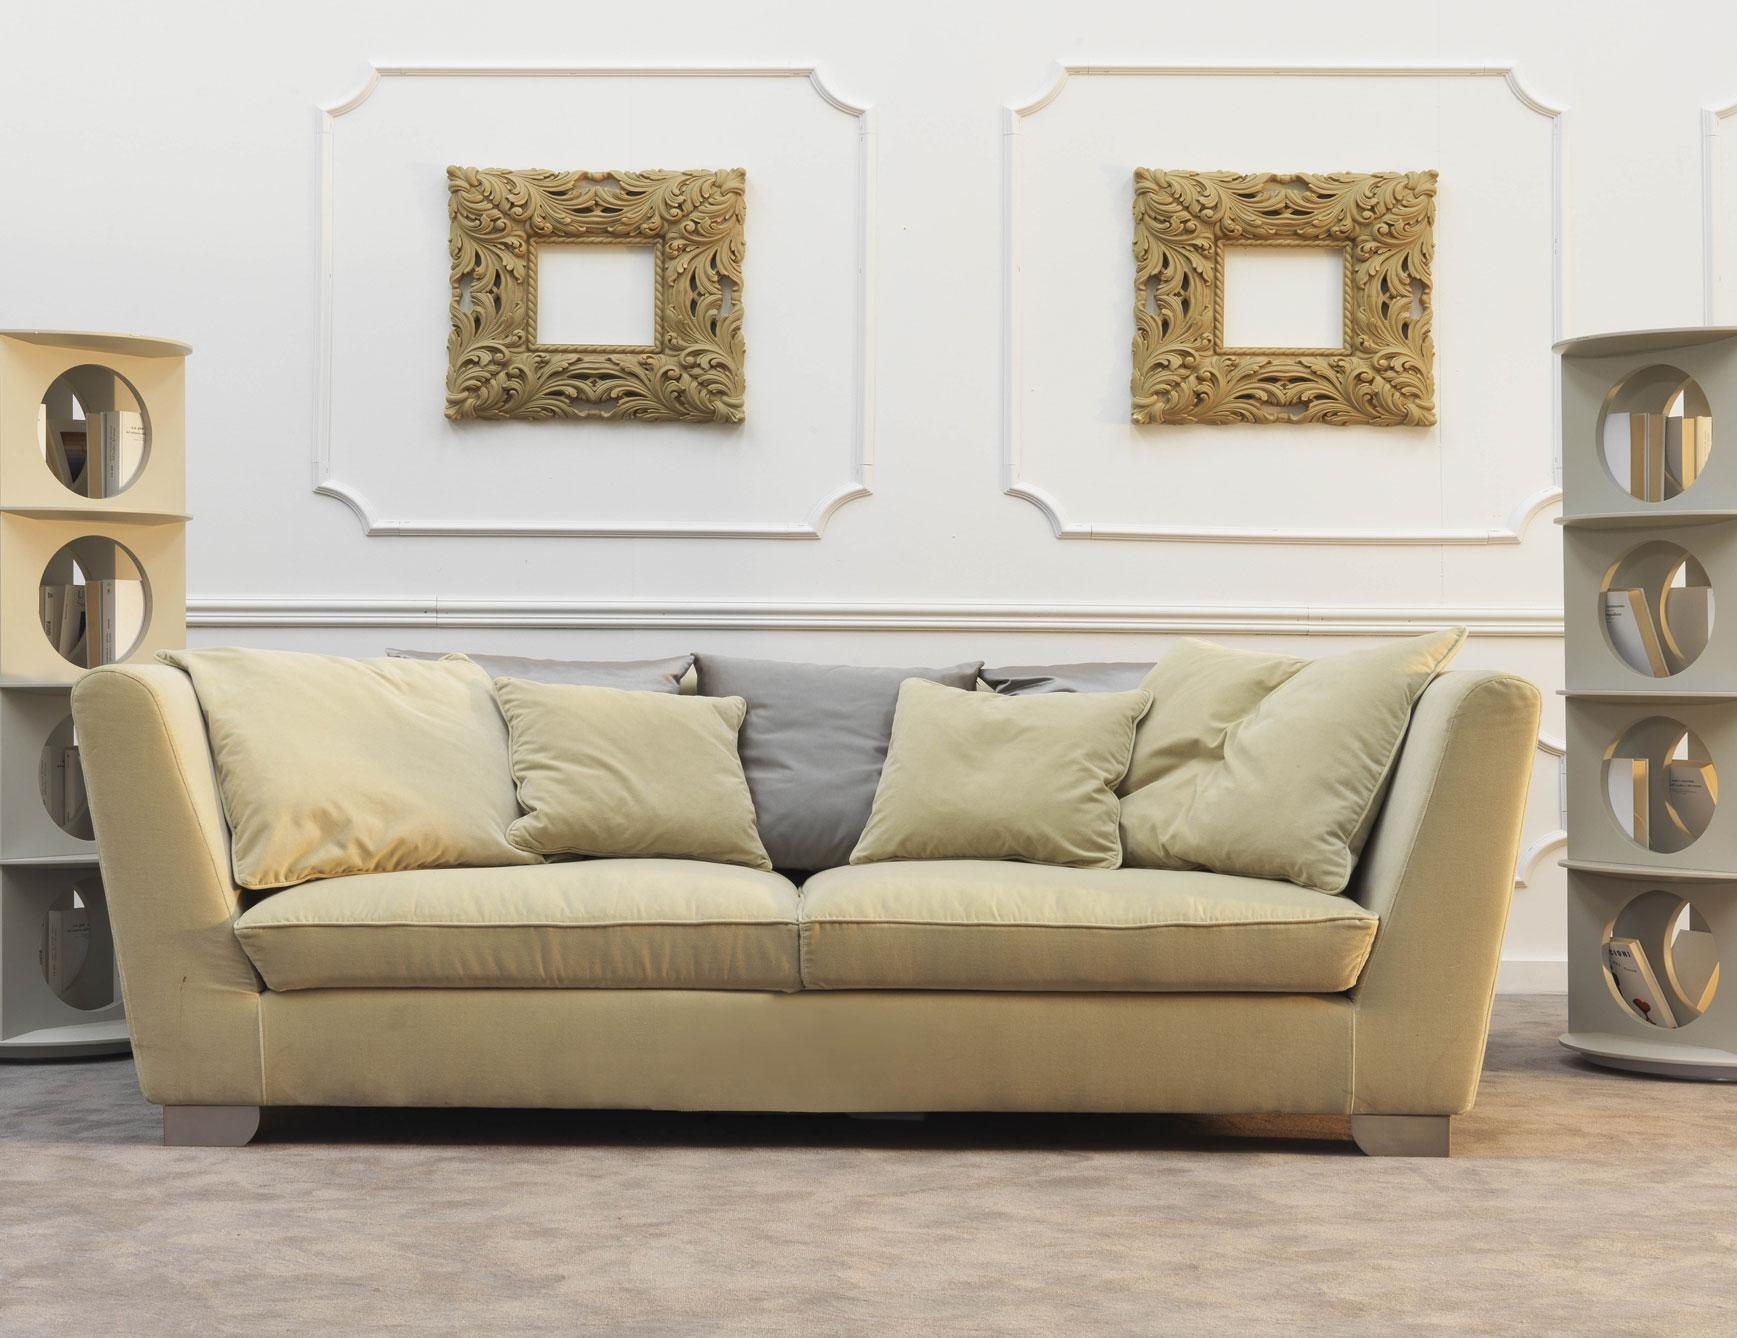 Fabric Sofas And Chairs – Home Design Minimalist Regarding Sofas And Chairs (View 6 of 20)